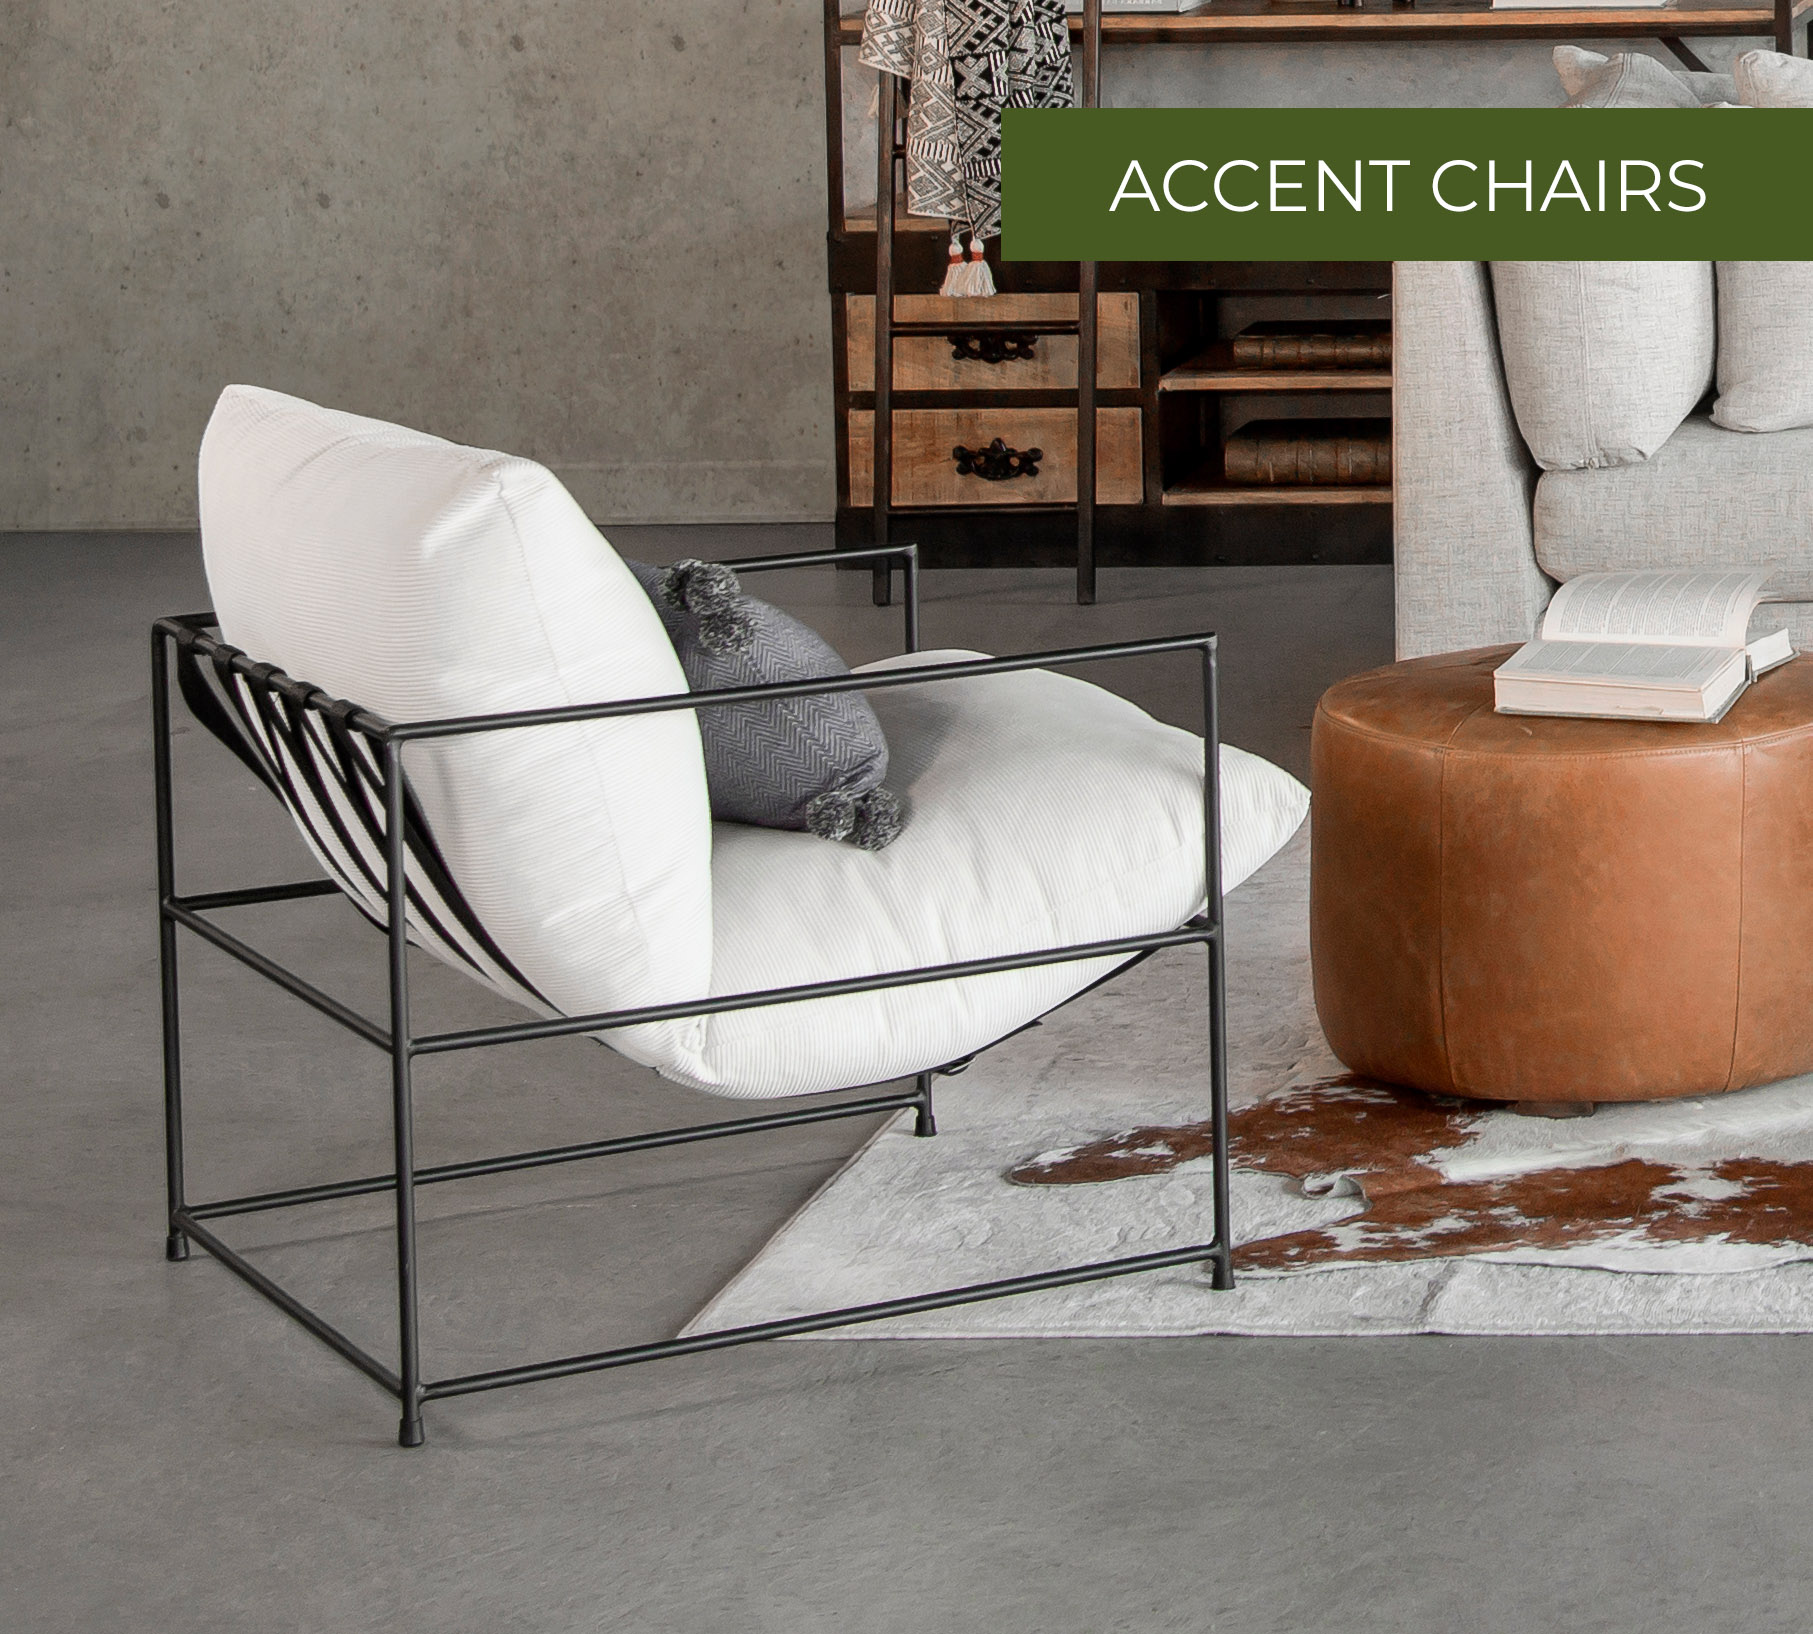 Accent Chairs at Muse & Merchant